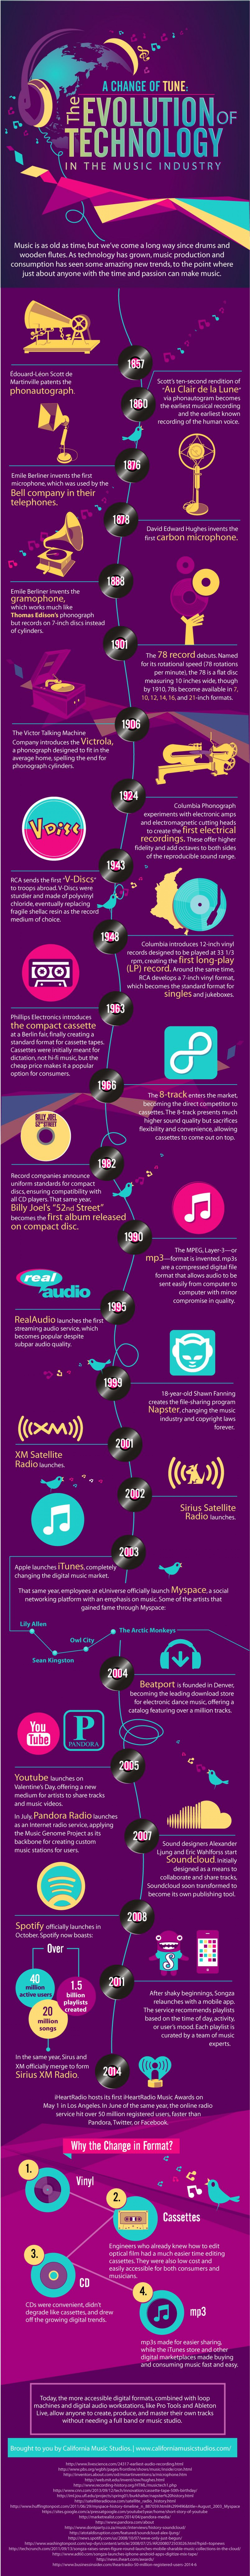 A Change of Tune: The Evolution of Technology in the Music Industry Infographic